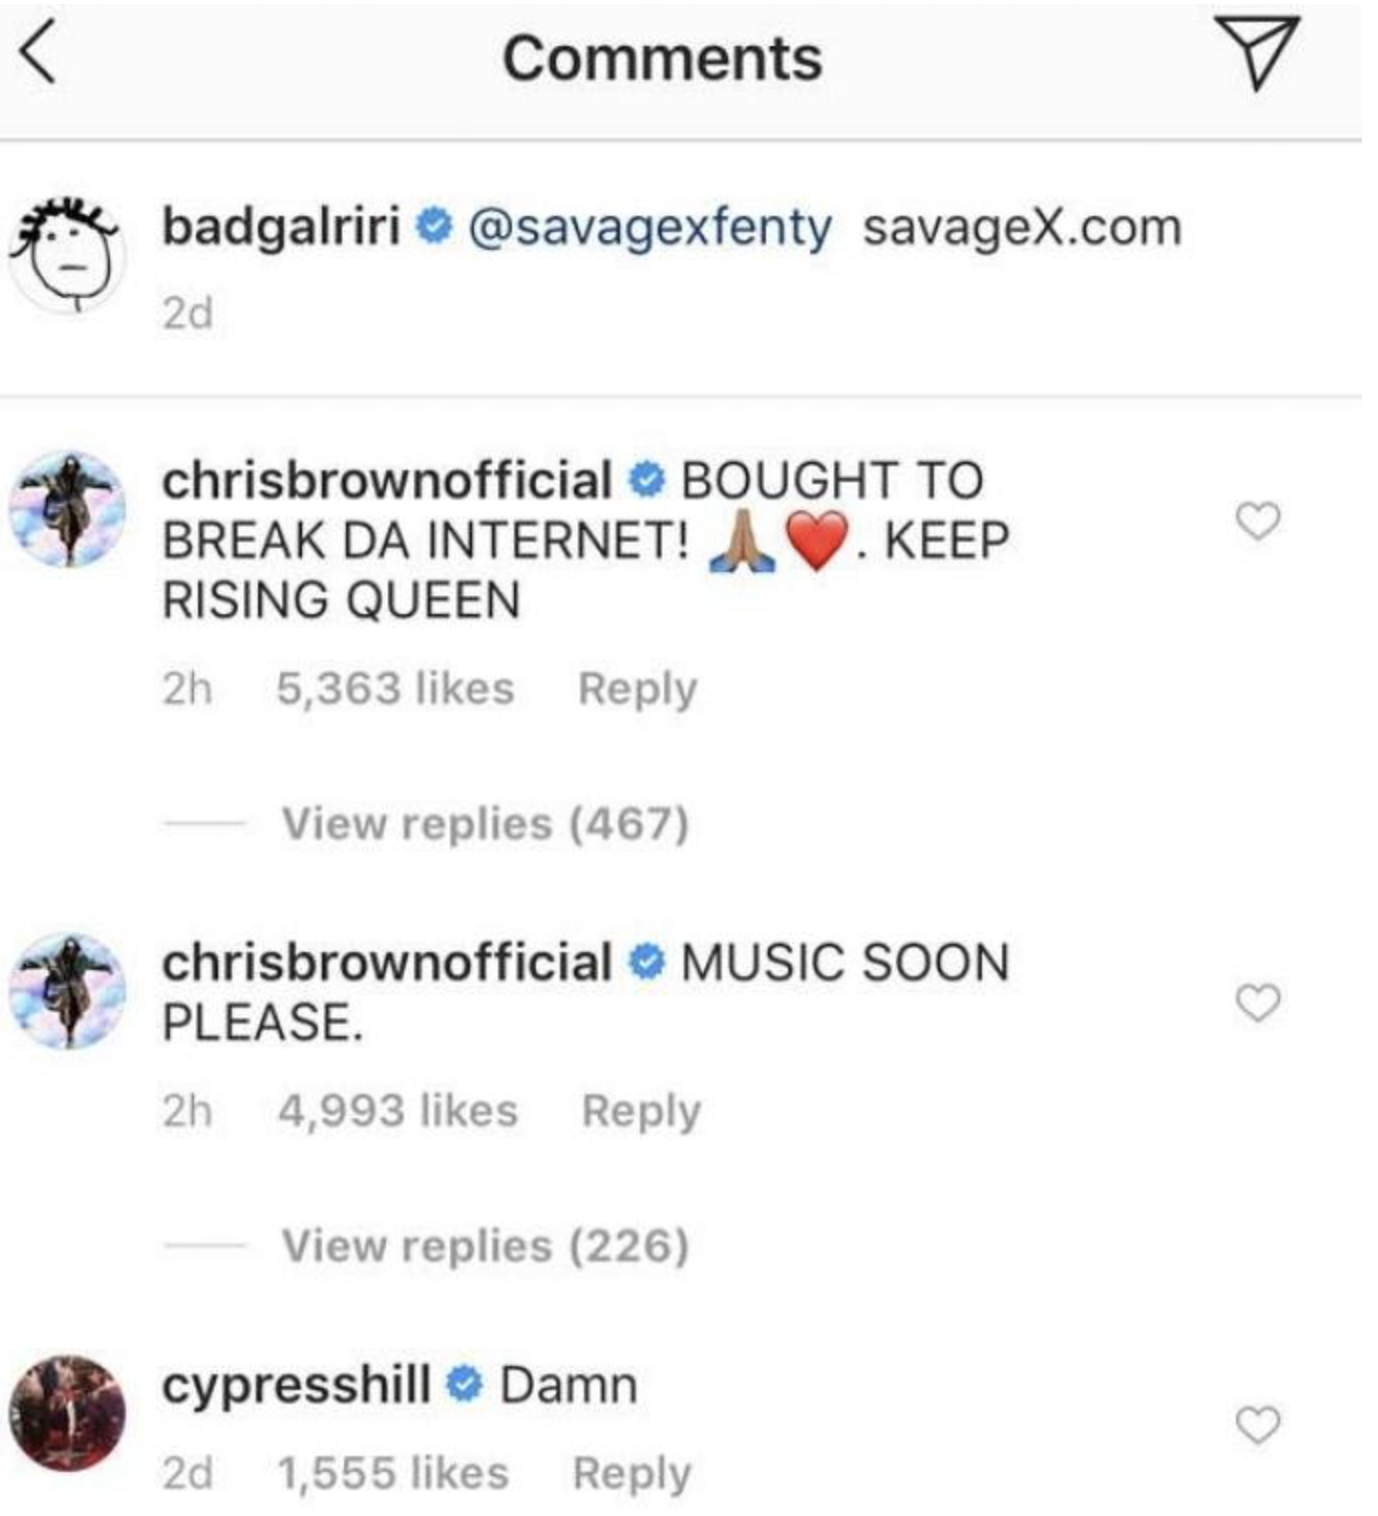 commentaire de Chris Brown